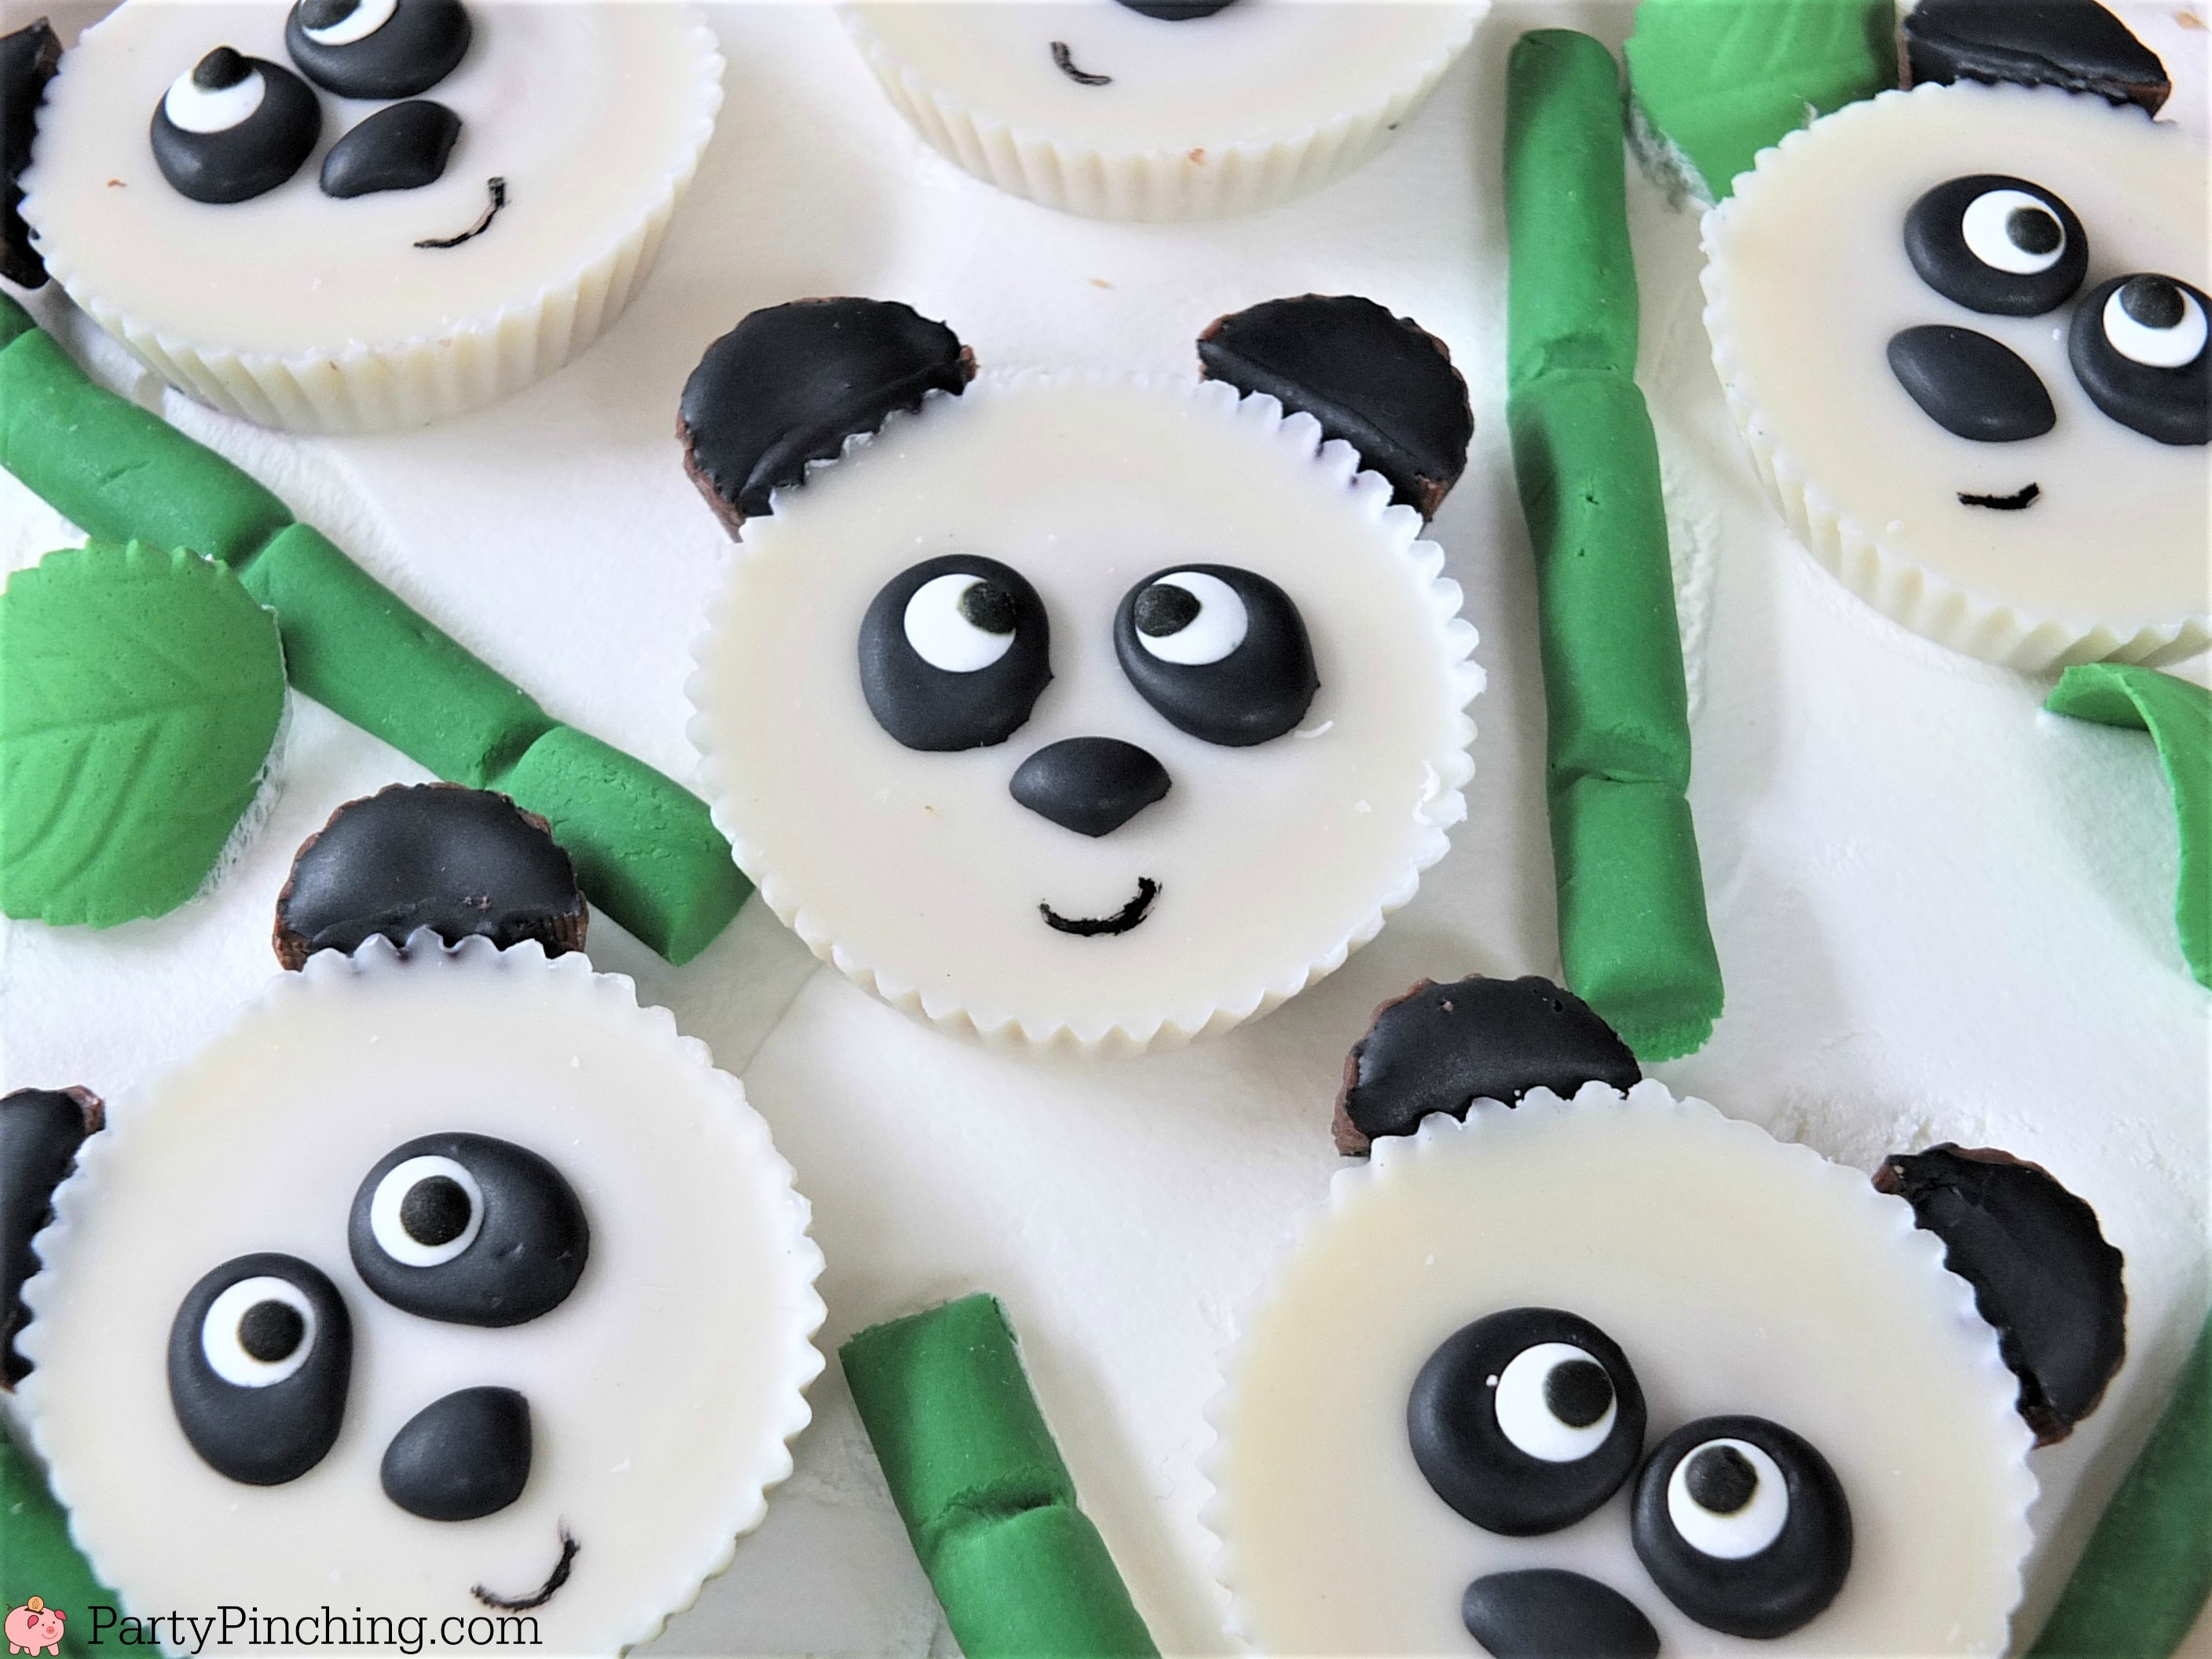 Panda Peanut Butter Cups Cute Cake For Panda Party